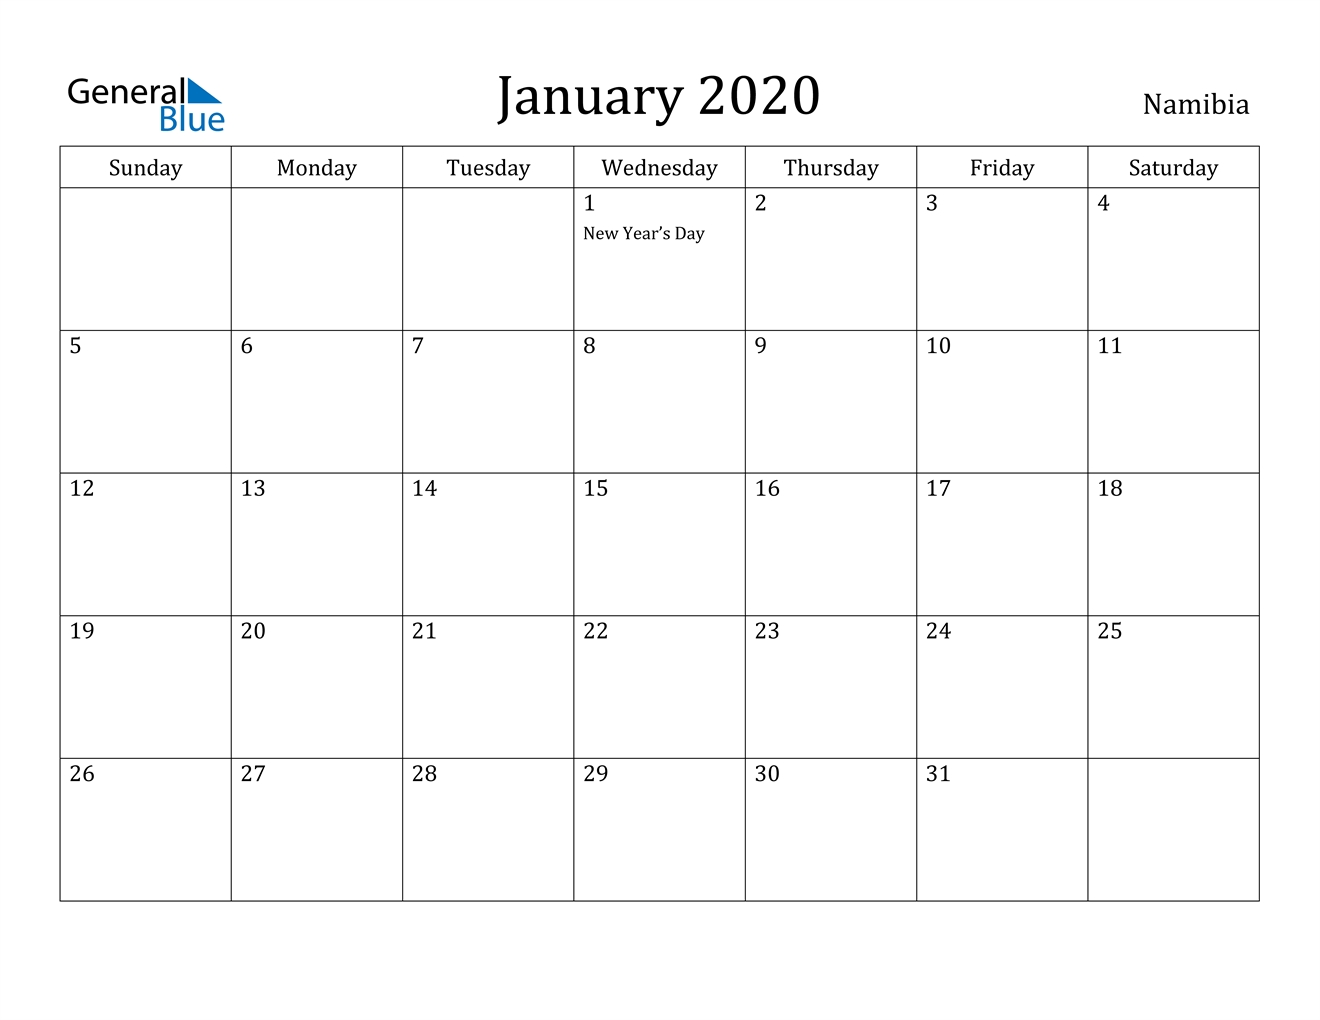 January 2020 Calendar - Namibia